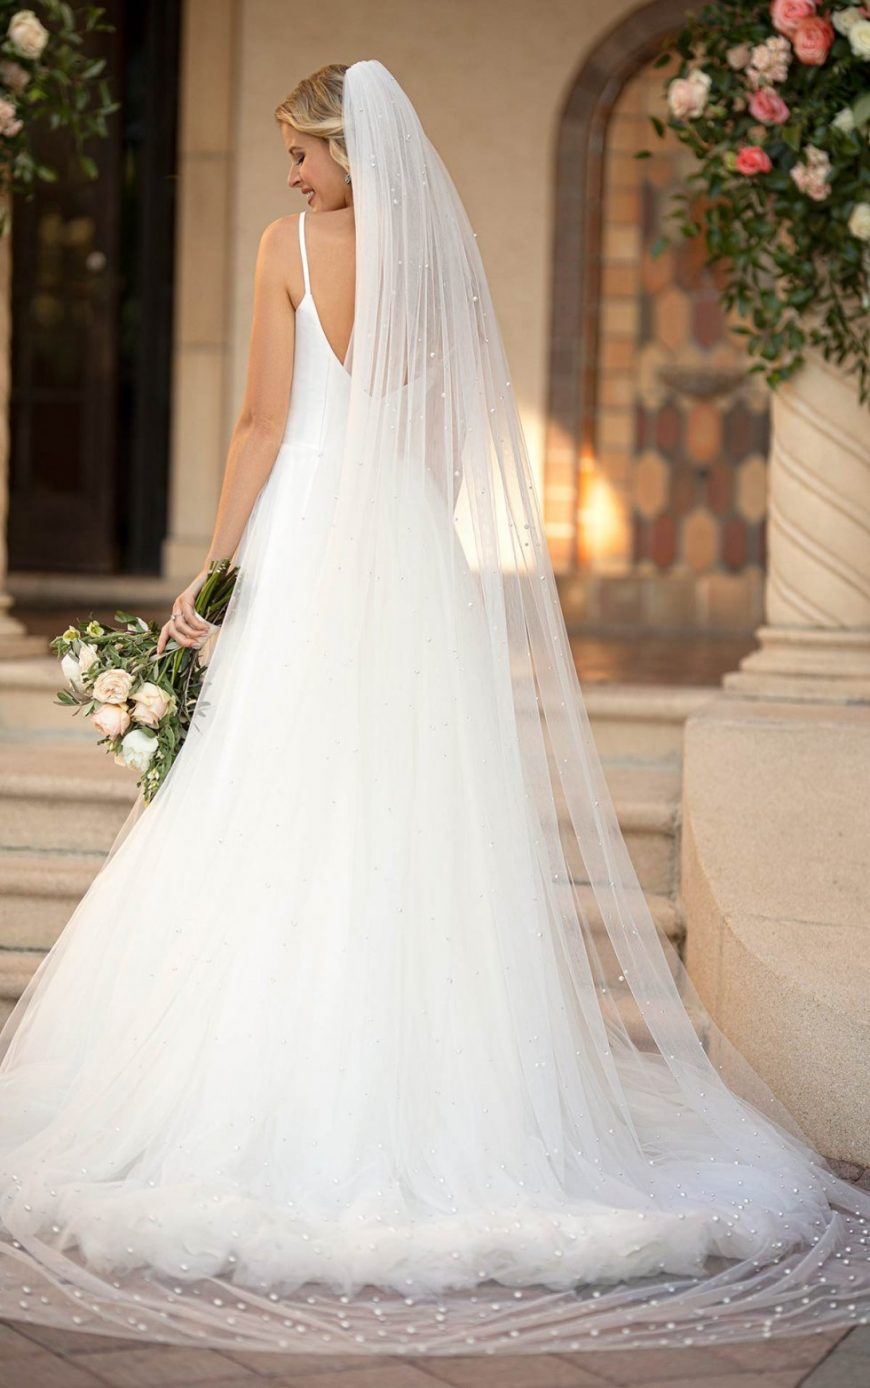 A-line Ballgown Simple Slim strap Scooped Open Back Plus size 7051 Stella York Tuscany Bridal